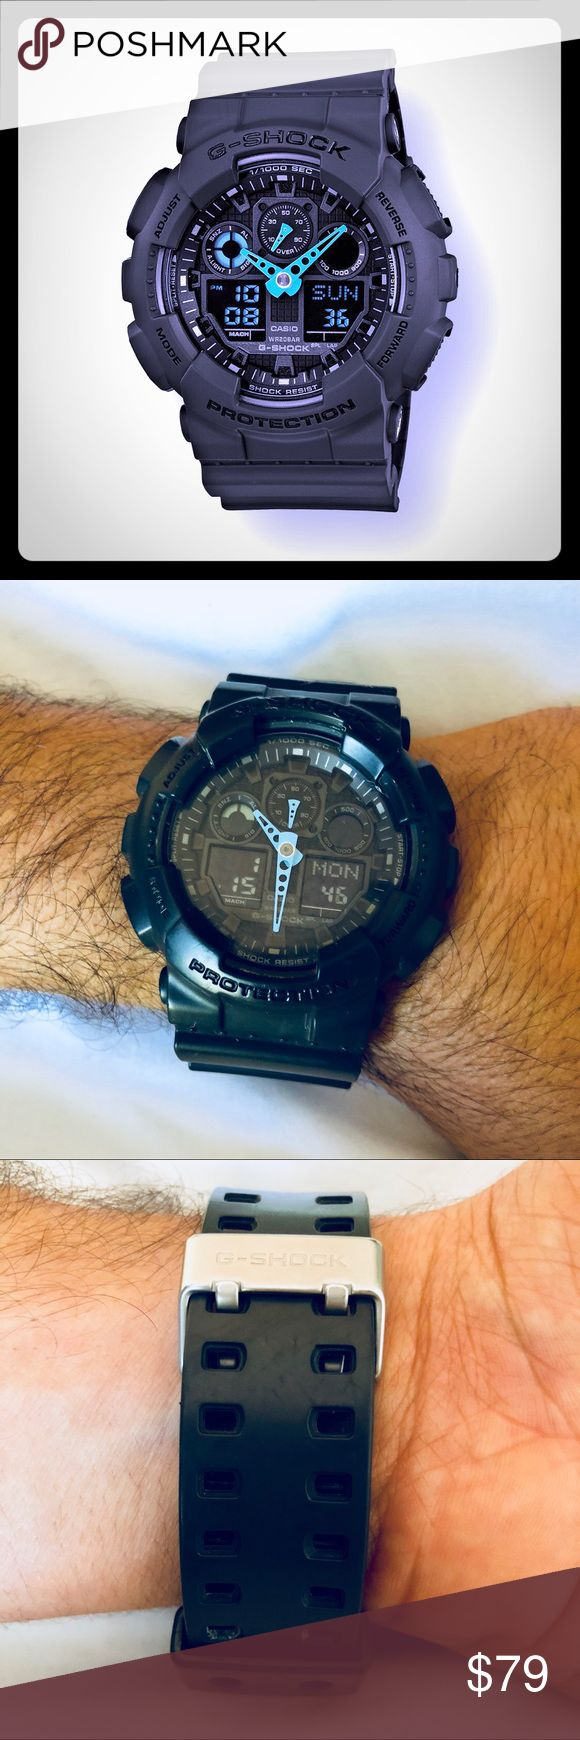 Like New G-SHOCK Watch!⏱💯Authentic! Used in very good condition! It is Shock resistant, magnetic resistant and 200M water resistant. Auto LED light with Afterglow World Time 29 times zones (48 cities + UTC) 4 daily alarms and 1 snooze alarm G-Shock Accessories Watches